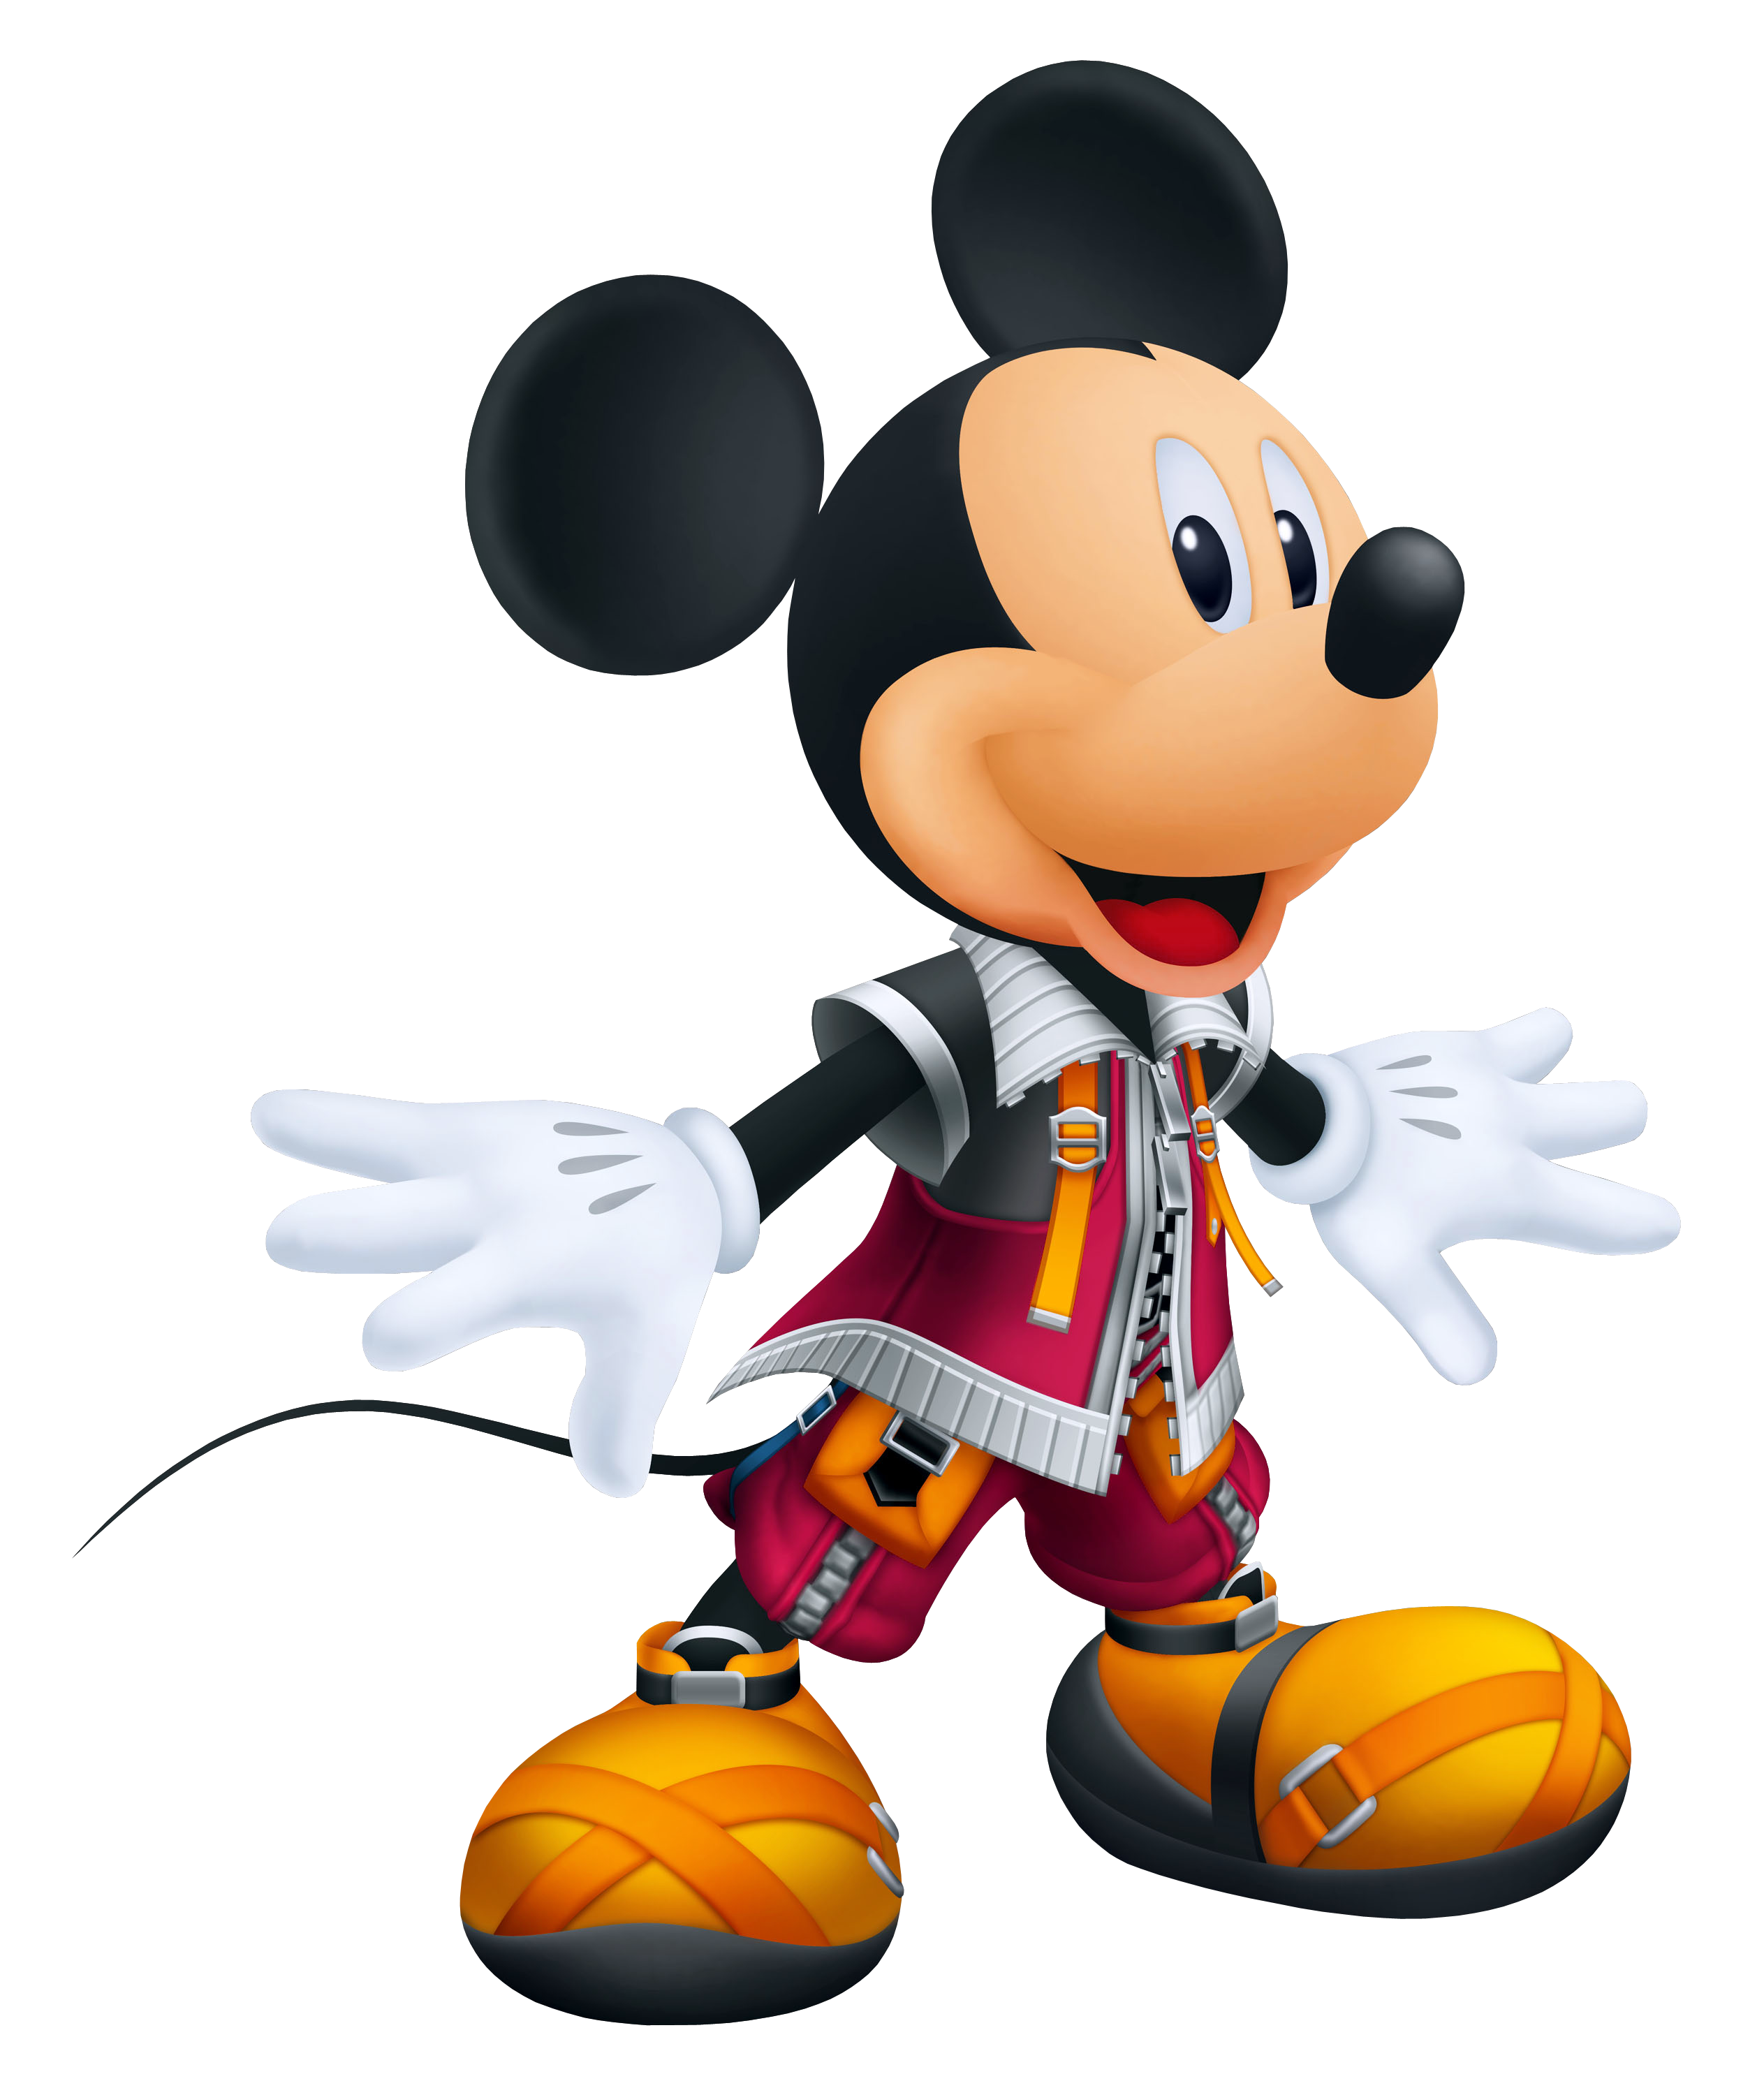 Disney basketball clipart clip transparent stock King Mickey Mouse PNG Image - PurePNG | Free transparent CC0 PNG ... clip transparent stock